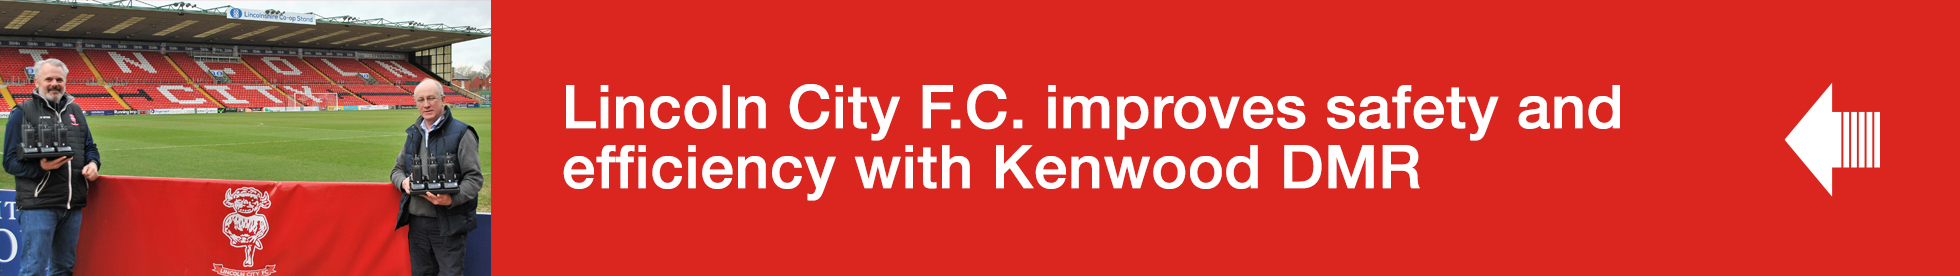 Lincoln City F.C. imrpoves safety and efficiency with Kenwood DMR